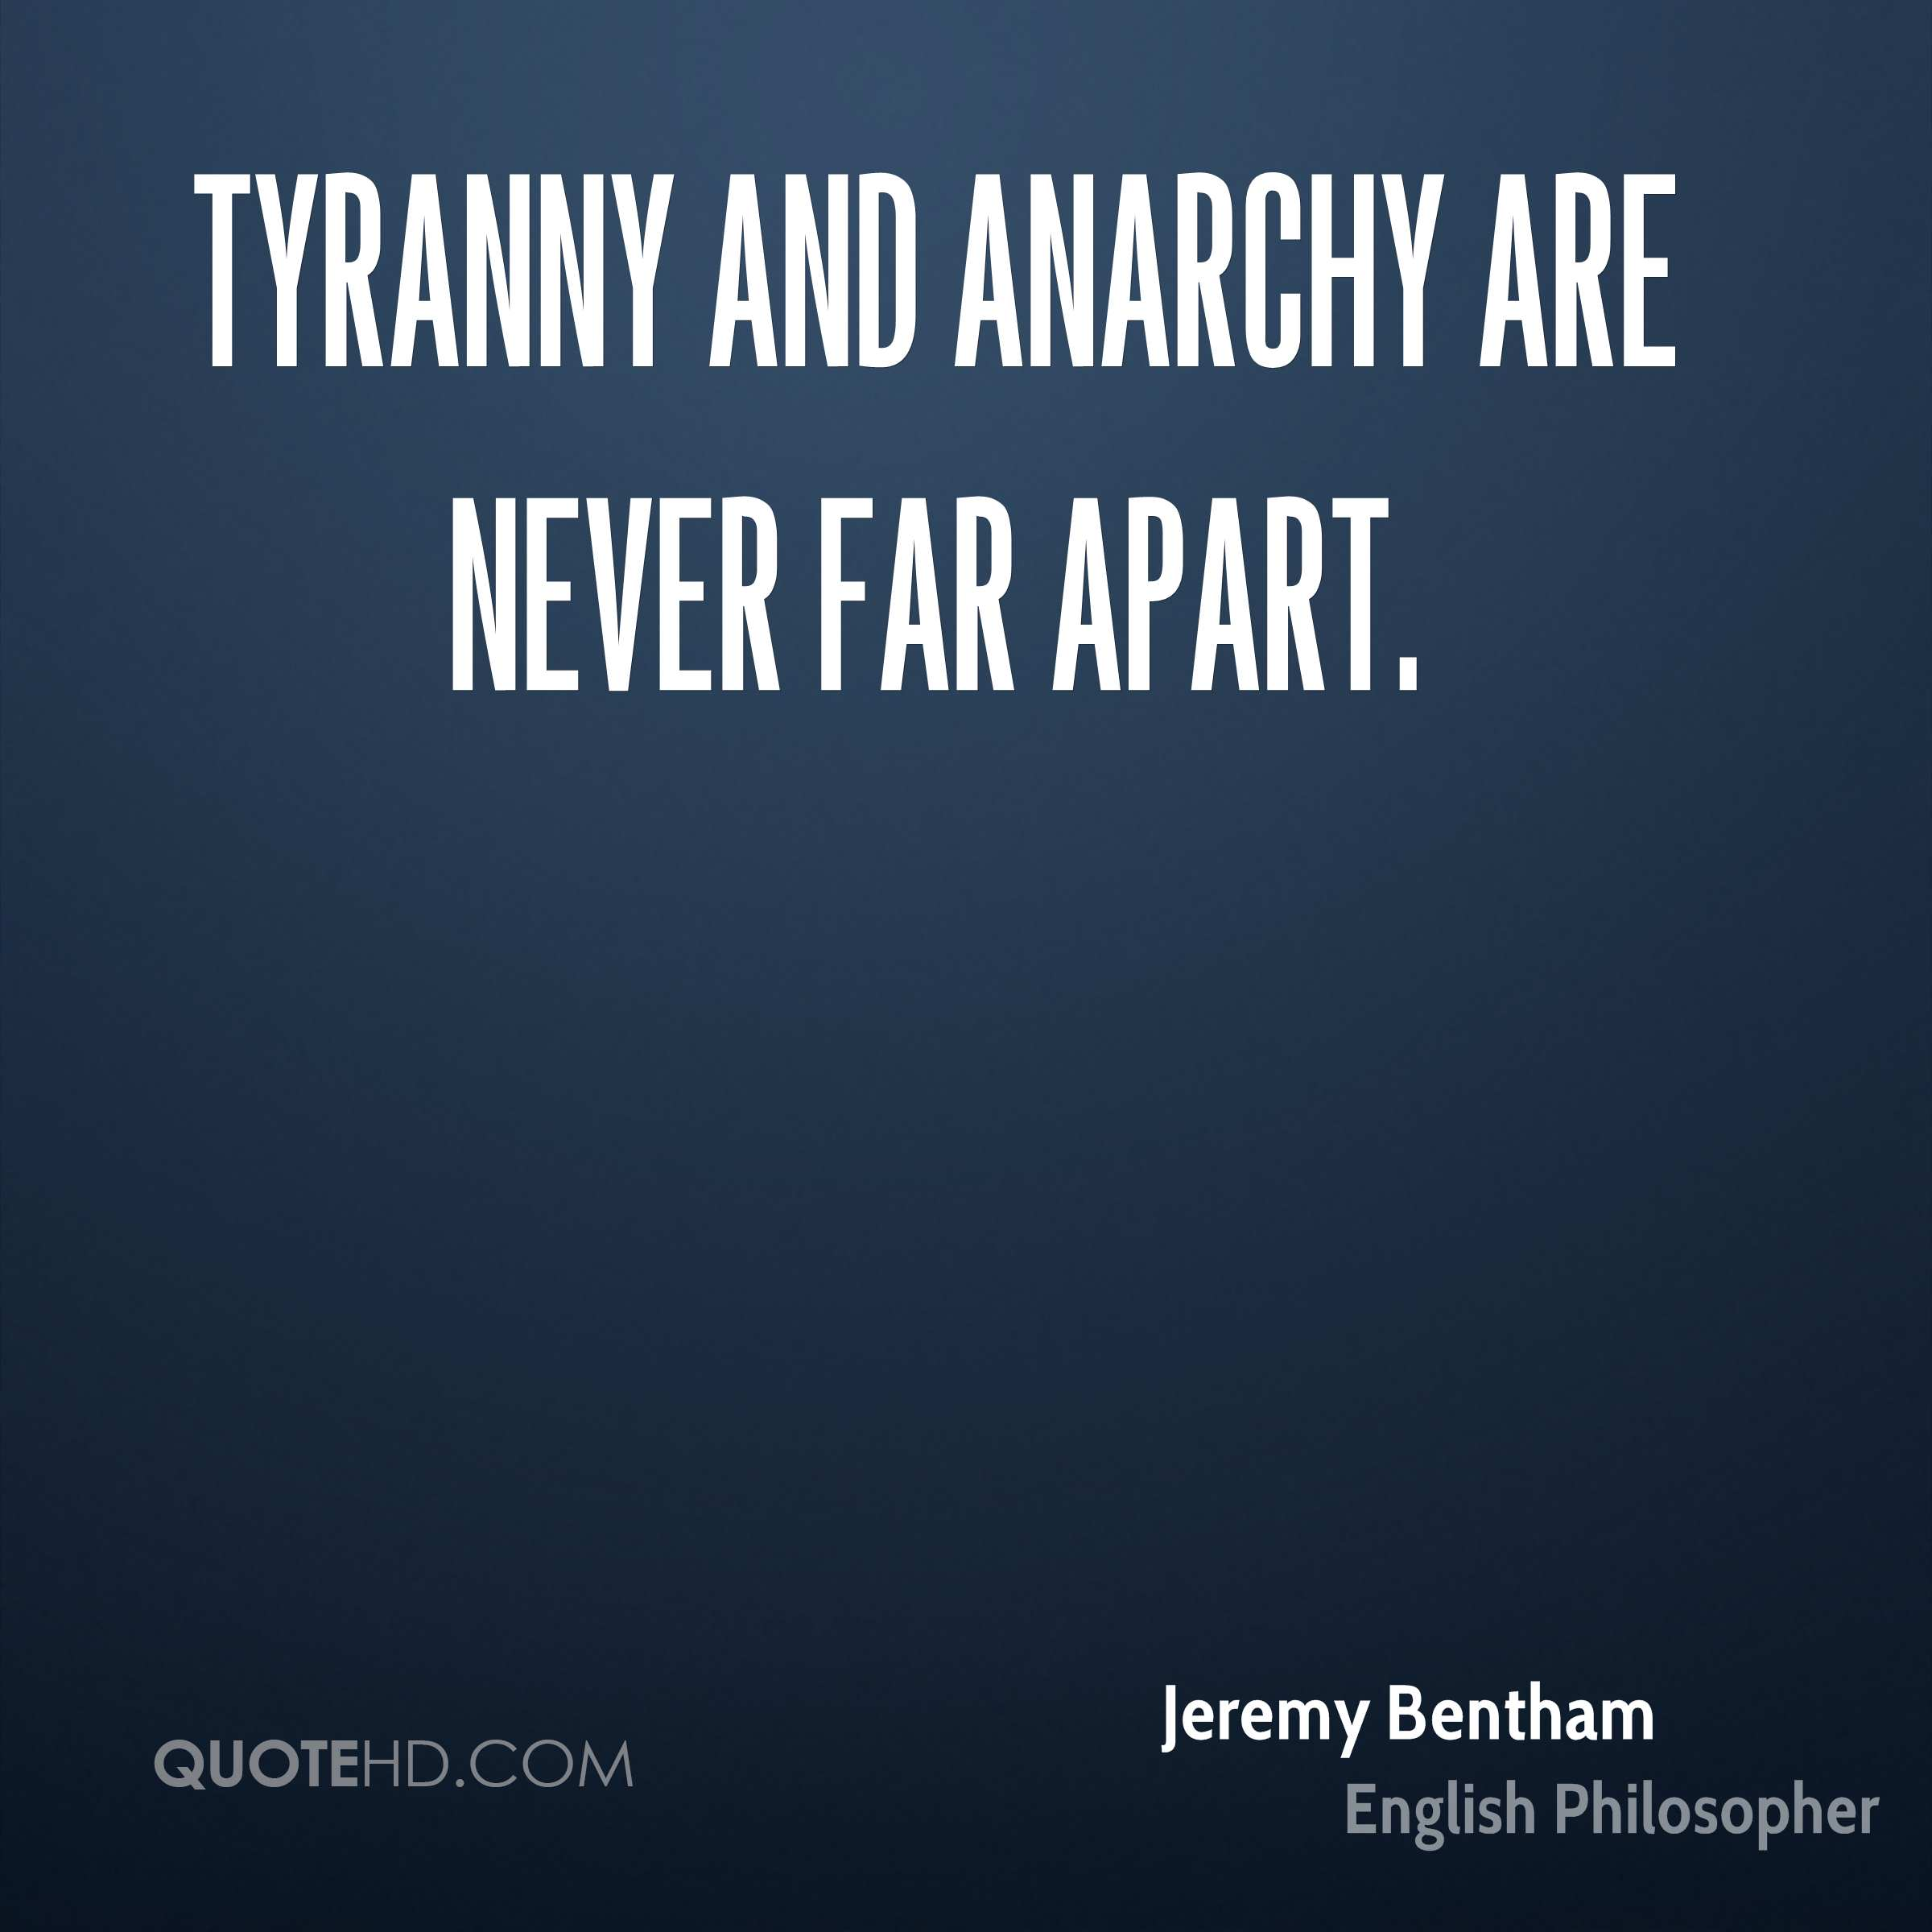 Tyranny and anarchy are never far apart.